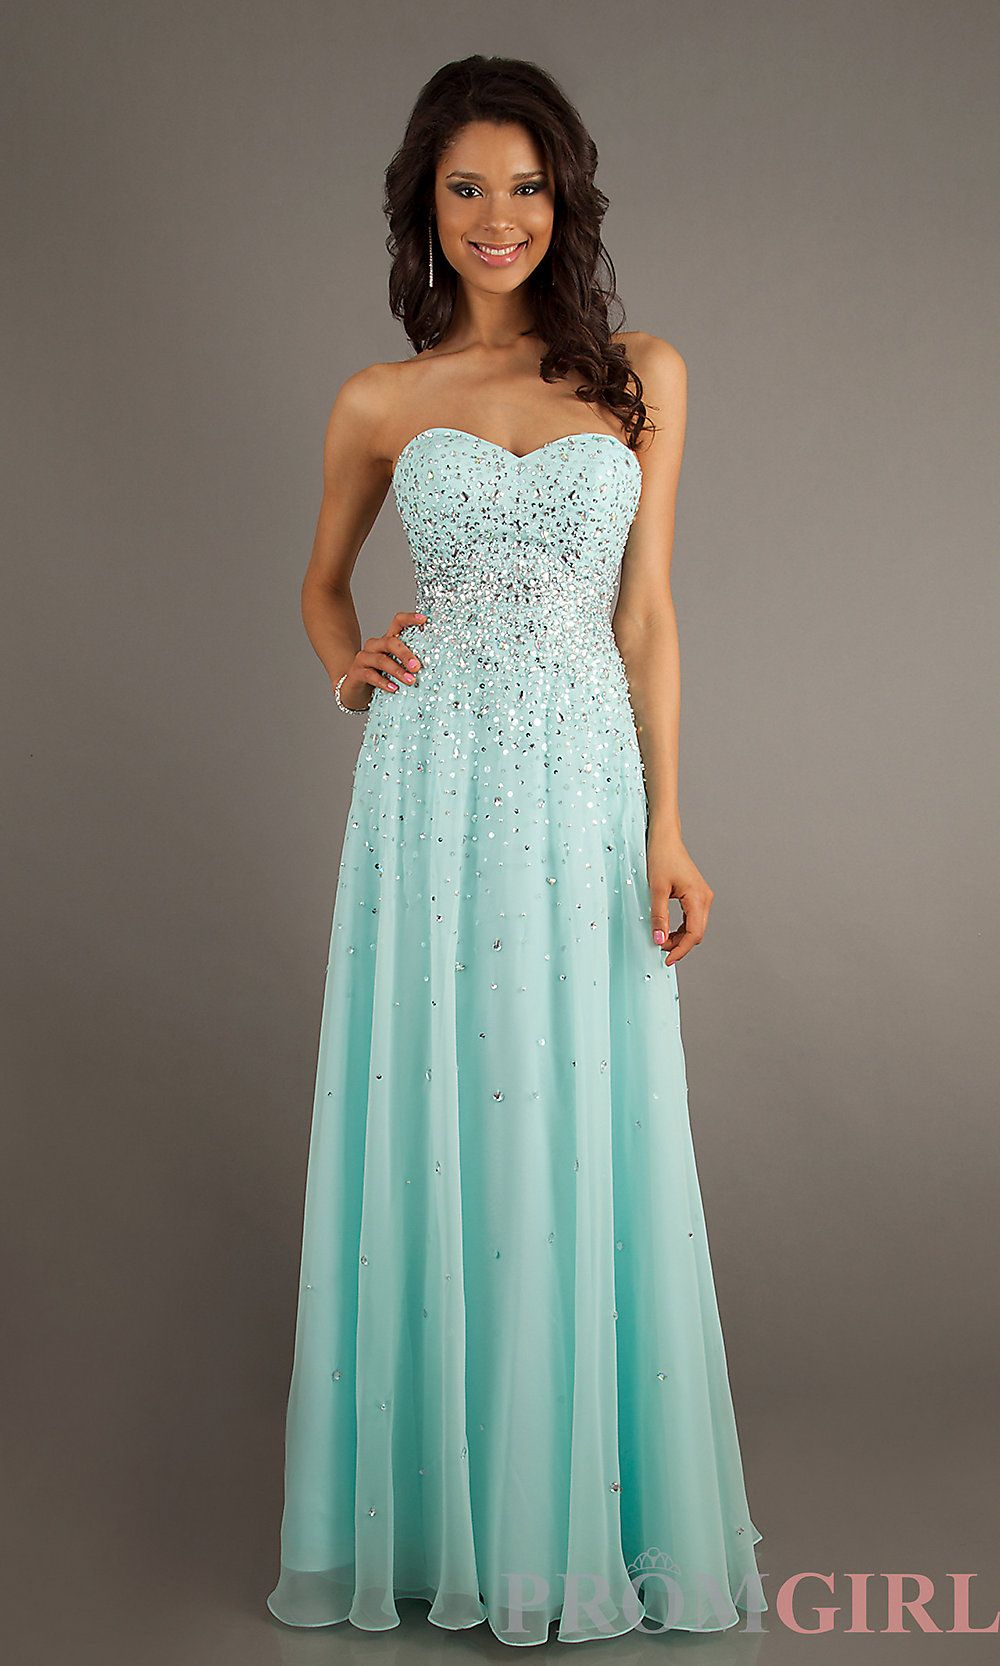 Strapless Prom Gown with Beading by Mori Lee 93087 | Strapless ...